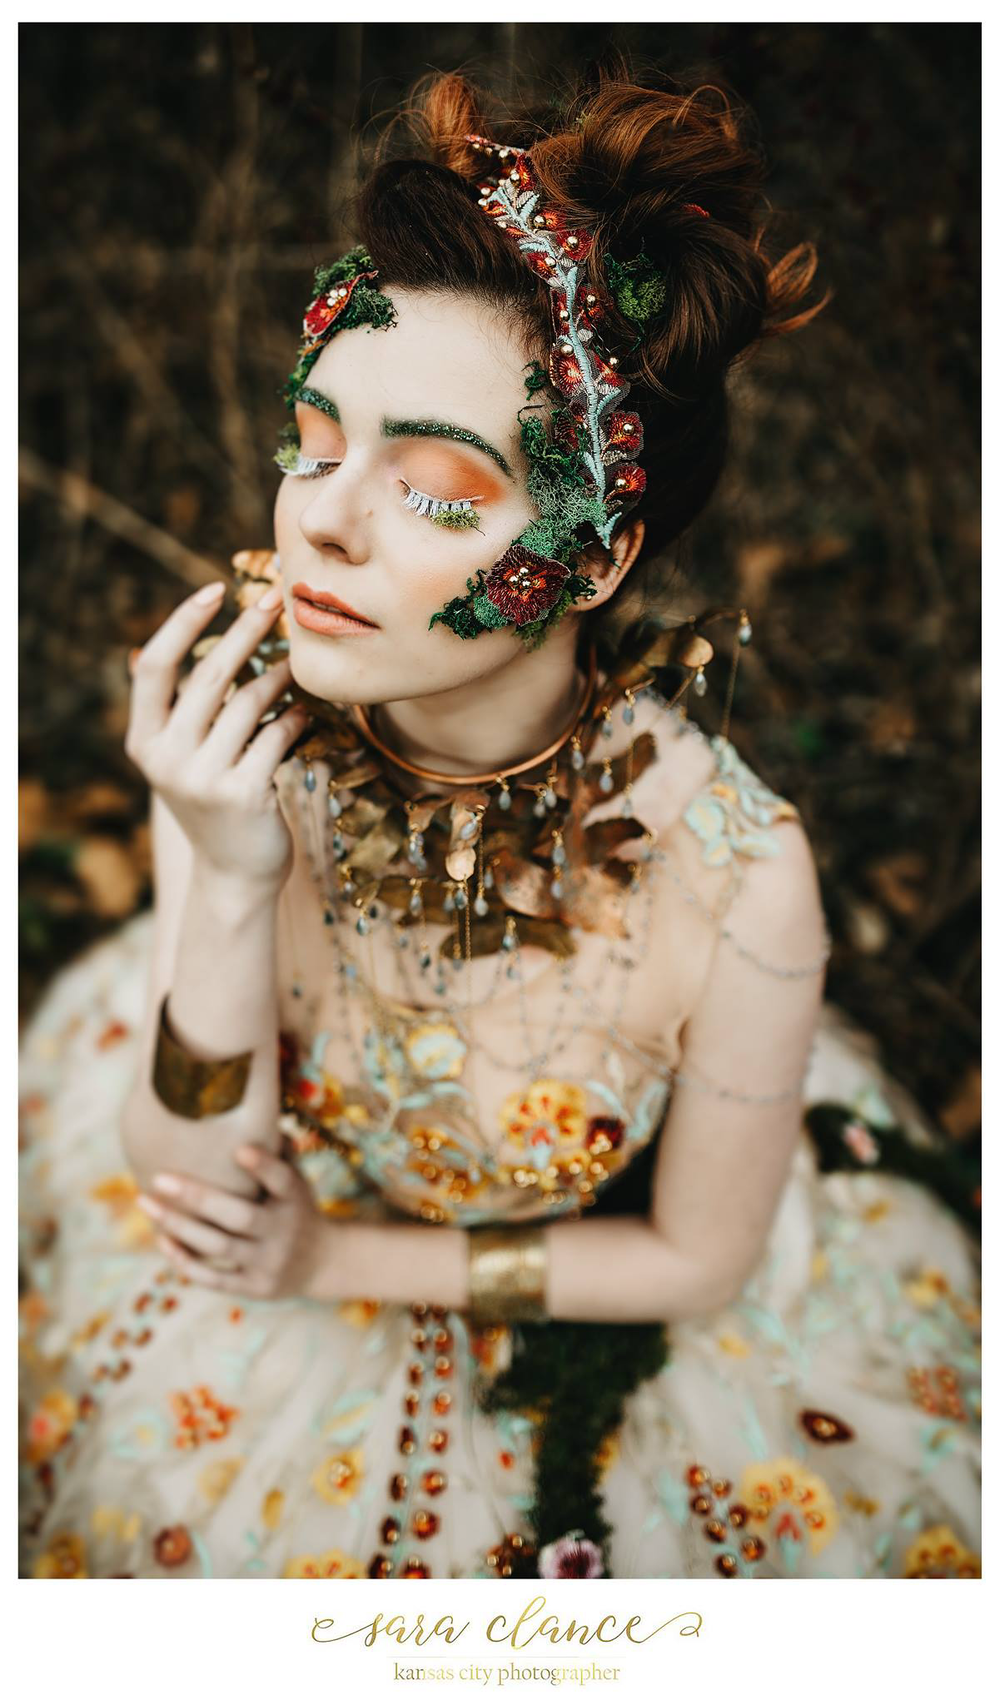 Beau Nu Magazine:Forest Fairy - Photographer: Sara Clance / Model: Audrey White / Hair: Geena Mericle / Makeup: Natalie Sutton / Gown: April Madden / Jewelry: Ngan Vuong - eNVe Designs